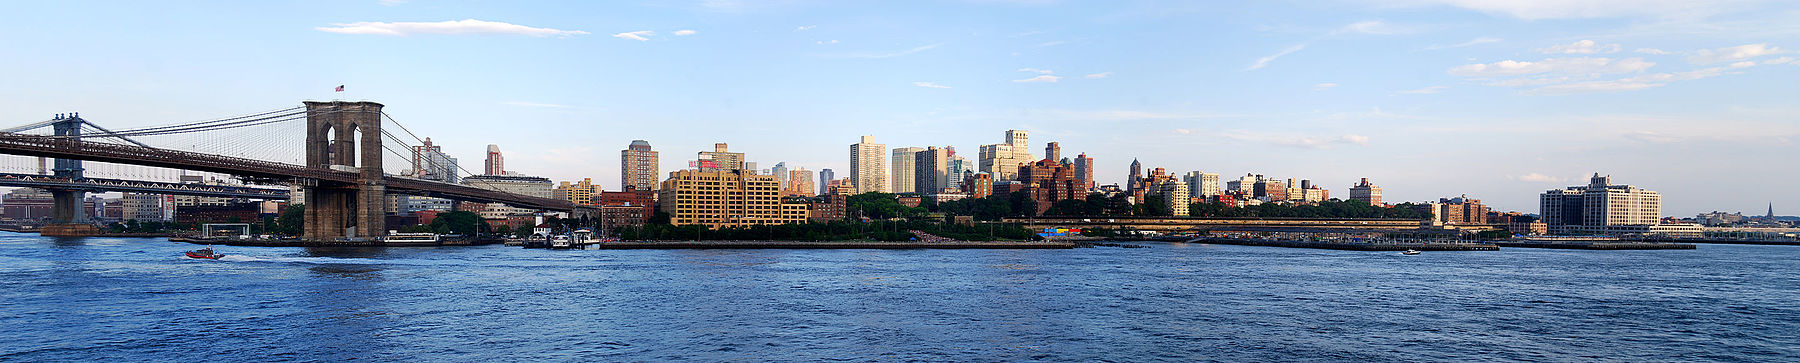 The Downtown Brooklyn skyline, the Manhattan Bridge (far left), and the Brooklyn Bridge (near left) are seen across the East River from Lower Manhattan at sunset in 2013.